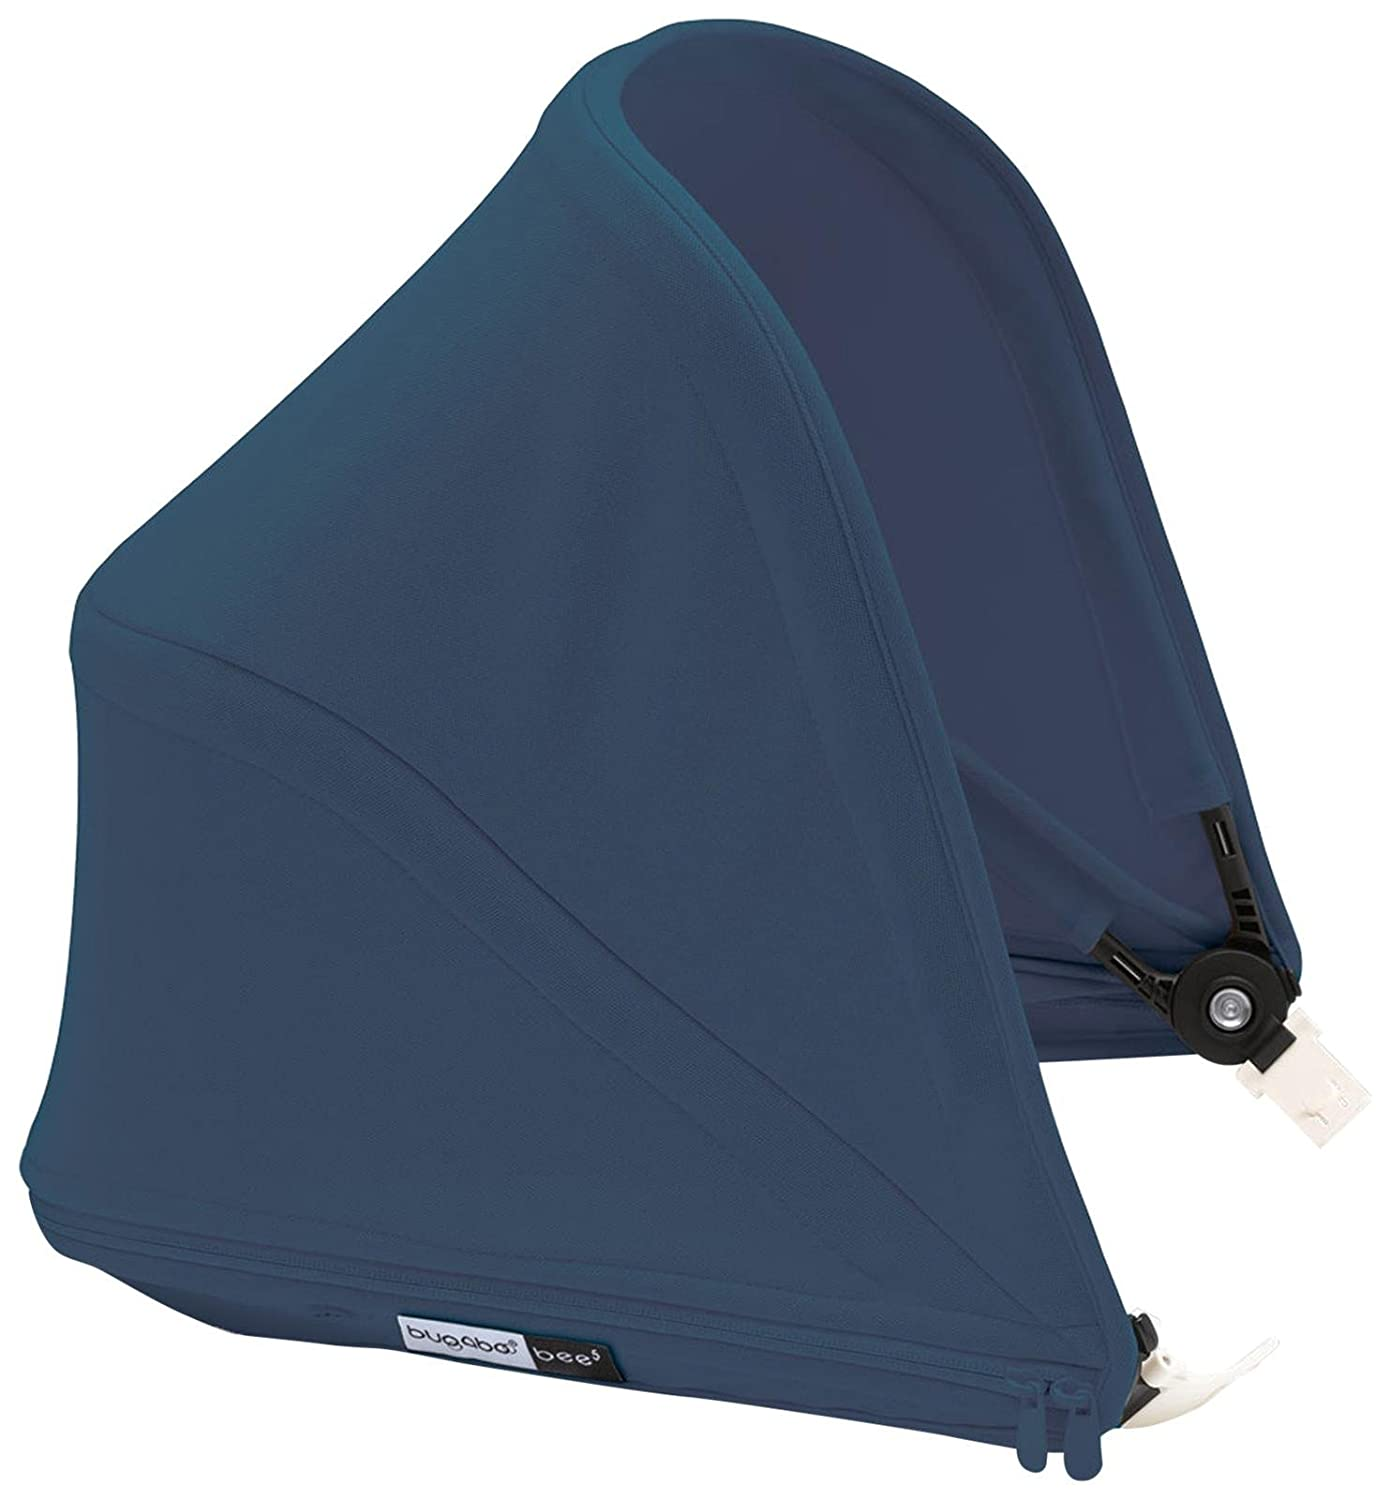 Bugaboo Bee5 Sun Canopy, Blue Mélange - Extendable Sun Shade for Full Weather Protection, Machine Washable 500227BM01